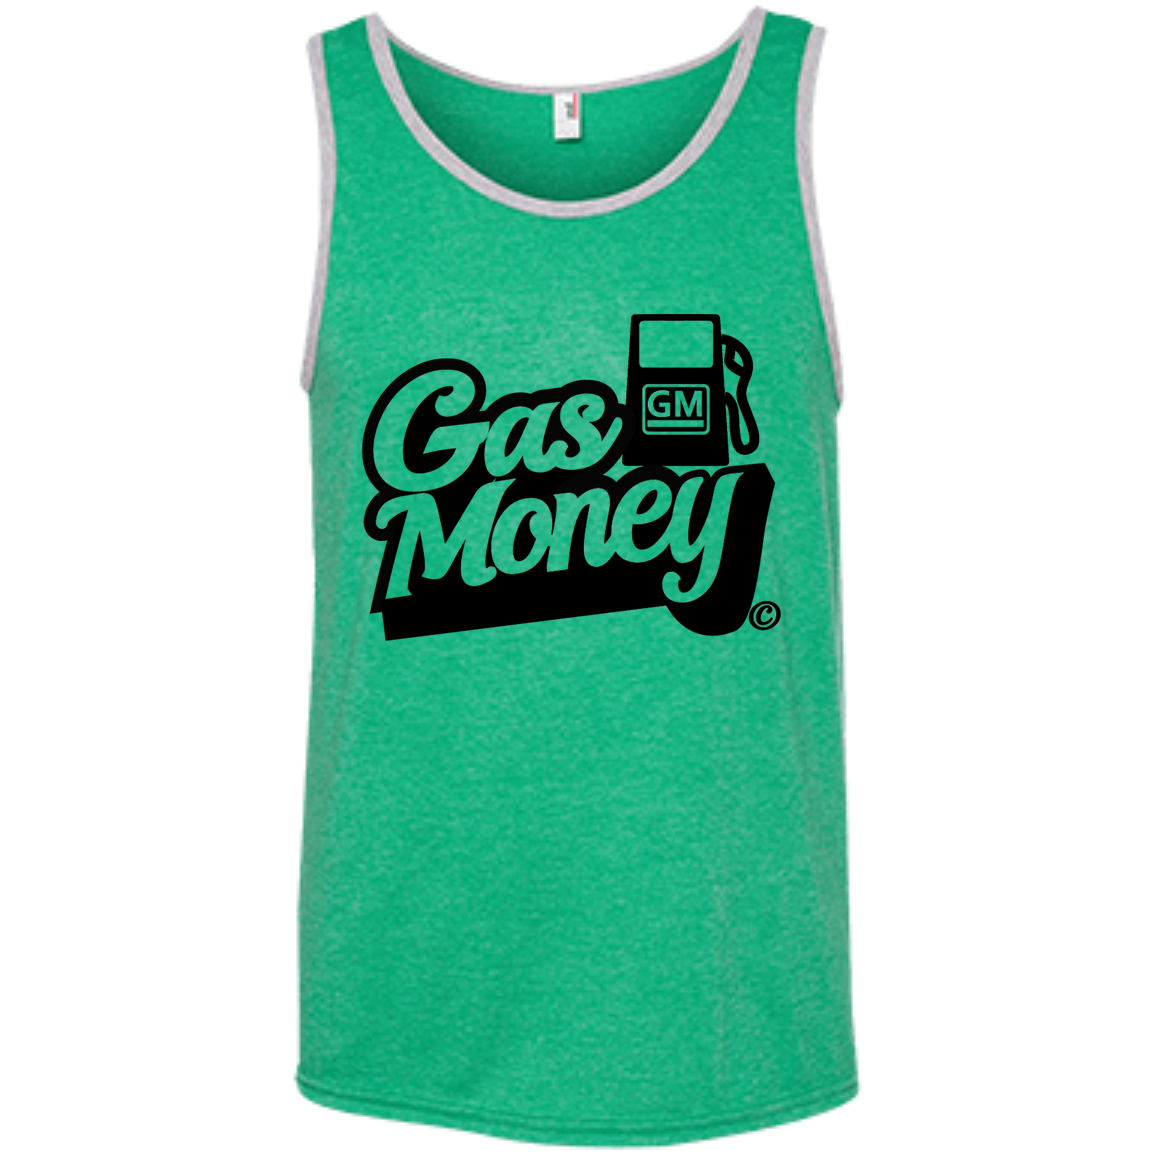 GM Weekend Cotton Tank Top